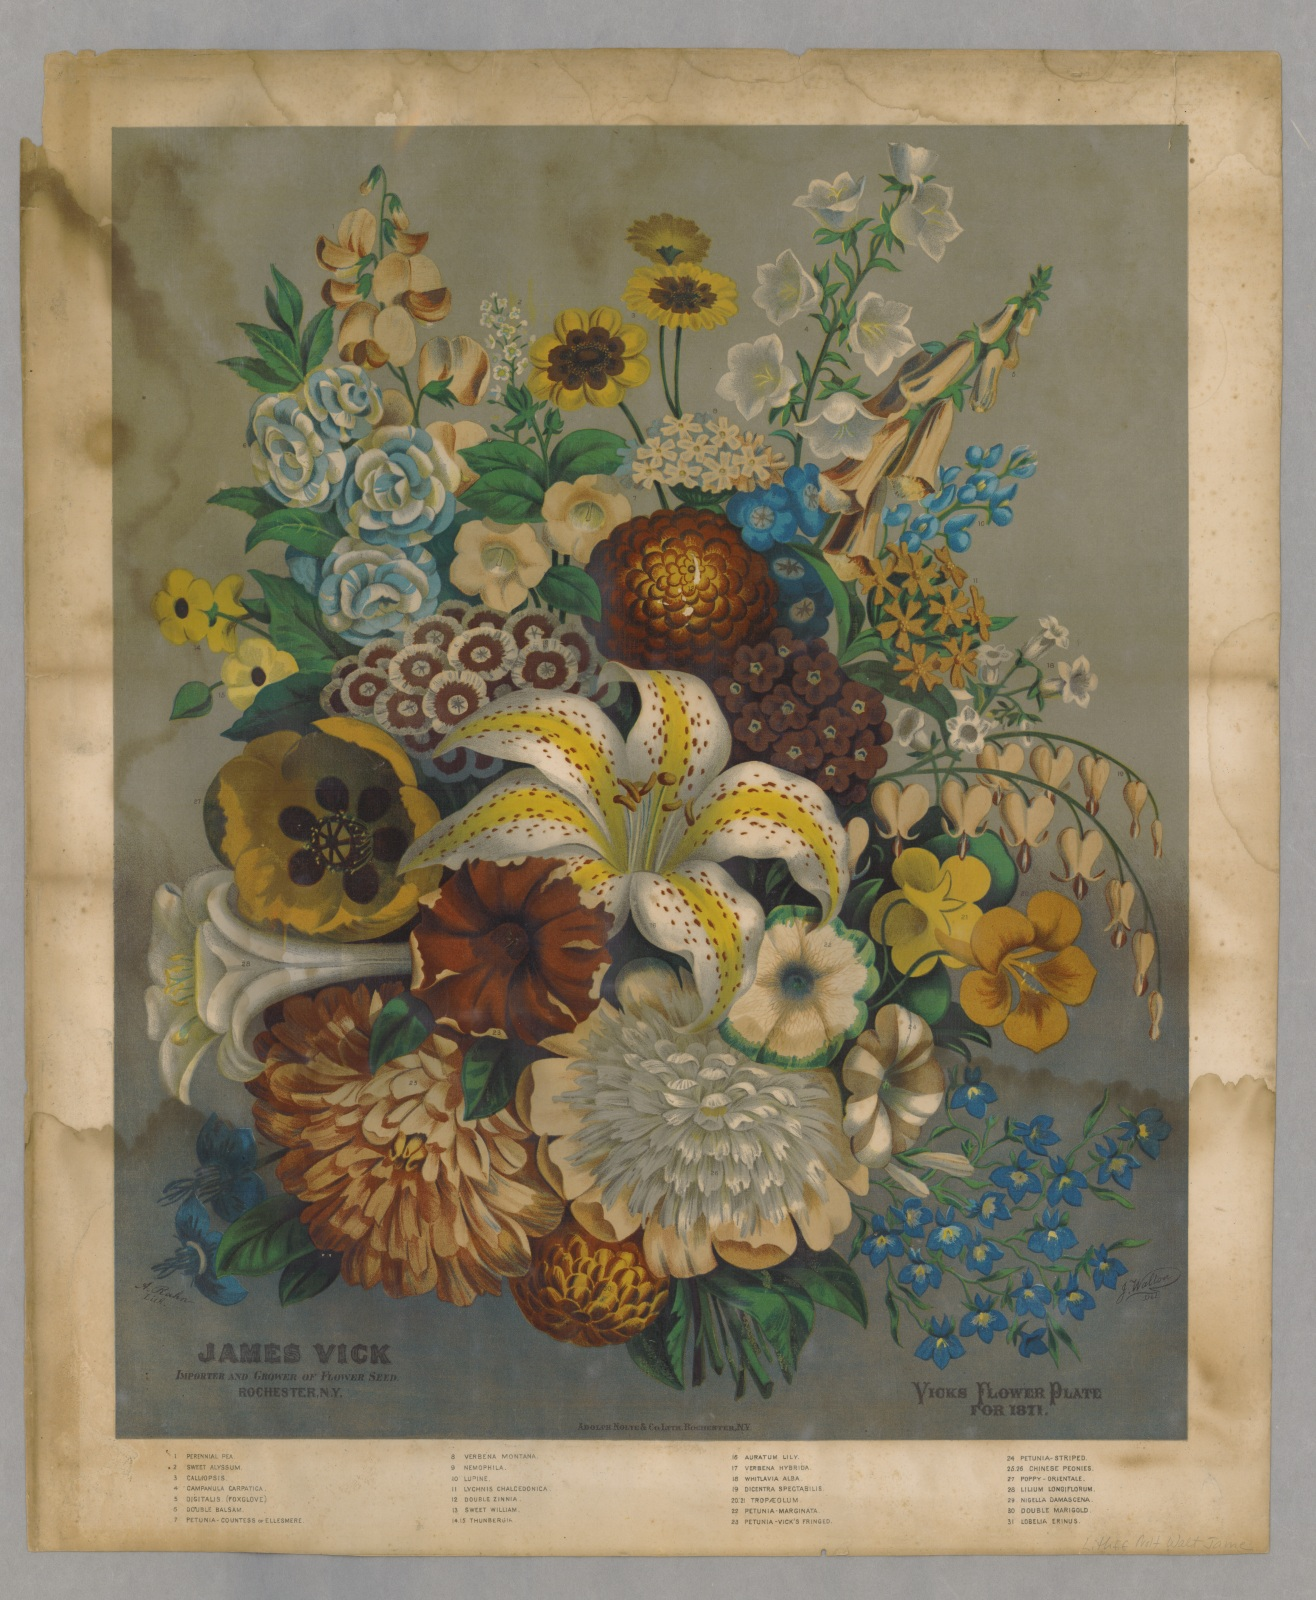 A chromo from the James Vick Seed Company. [Courtesy of AAS]